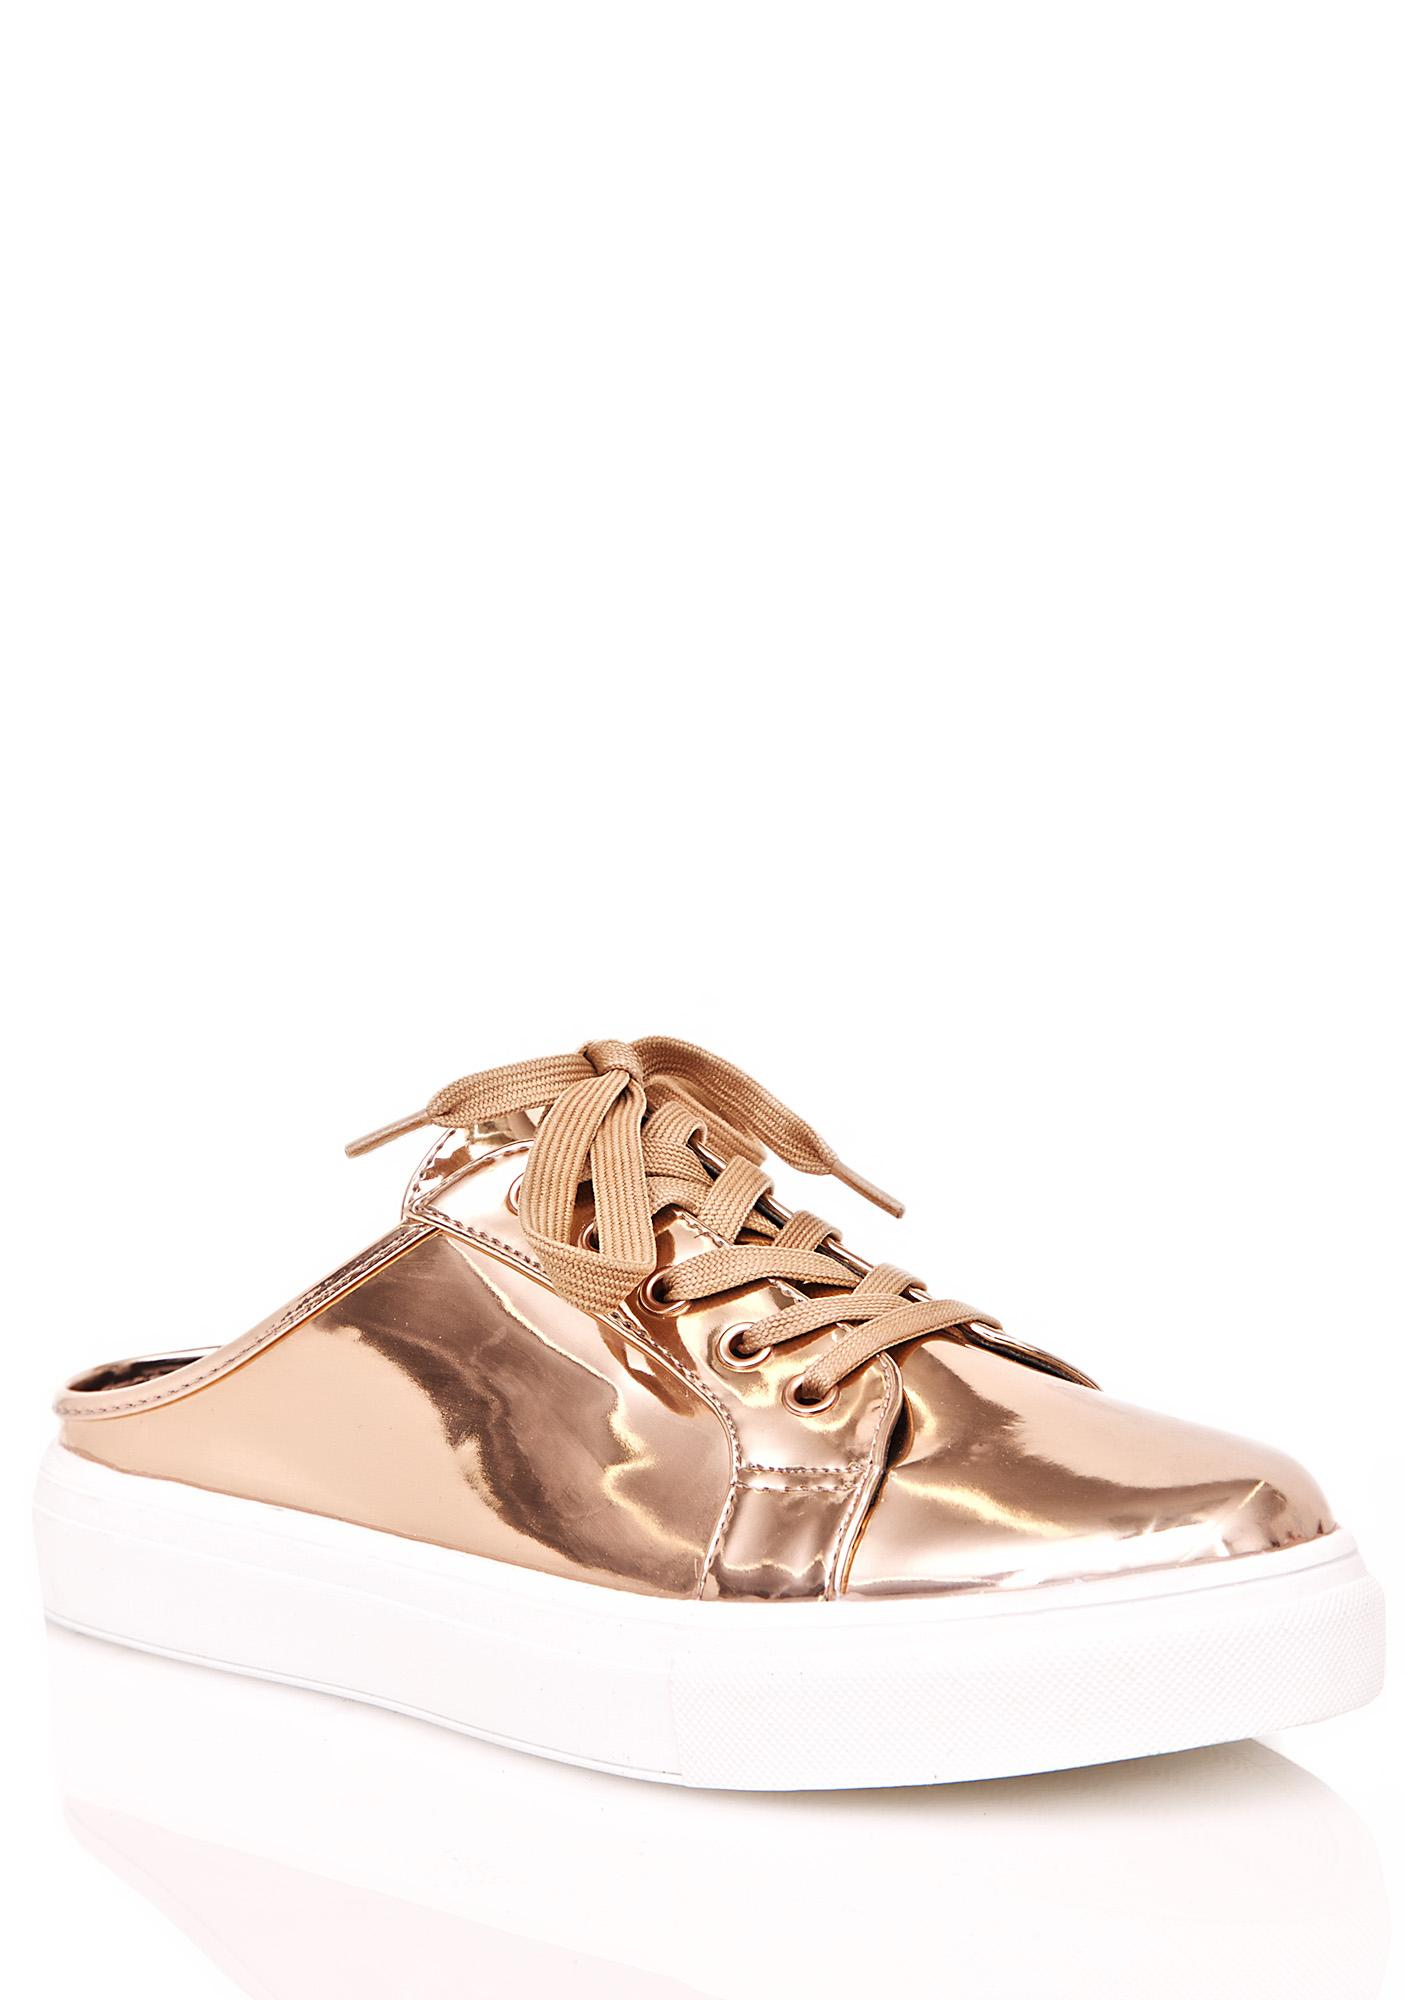 Golden Runaround Slip-On Sneakers